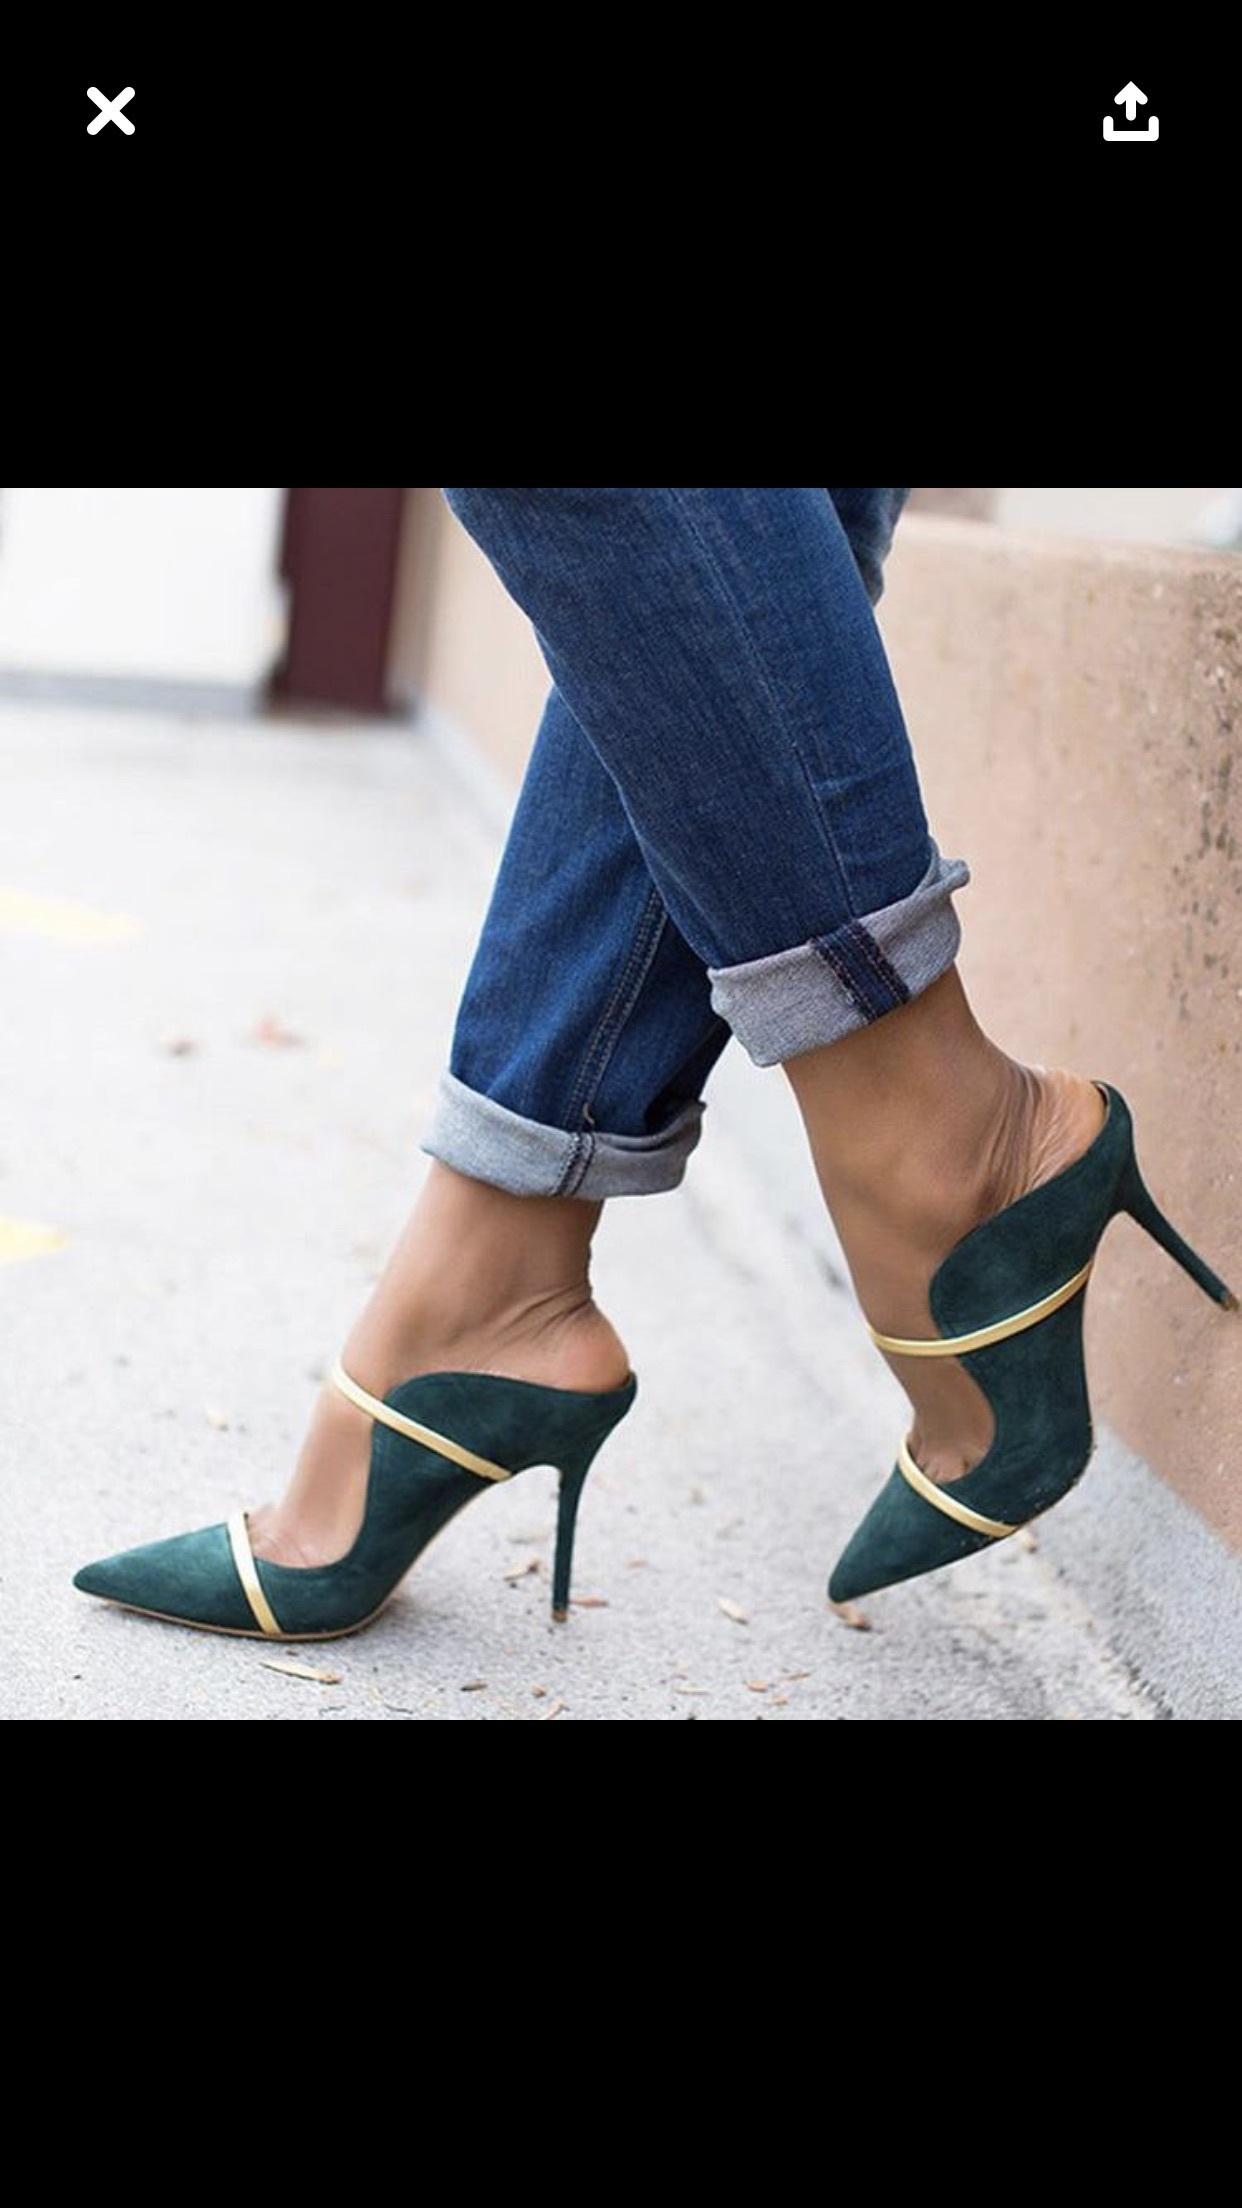 shoes green suede strappy heels